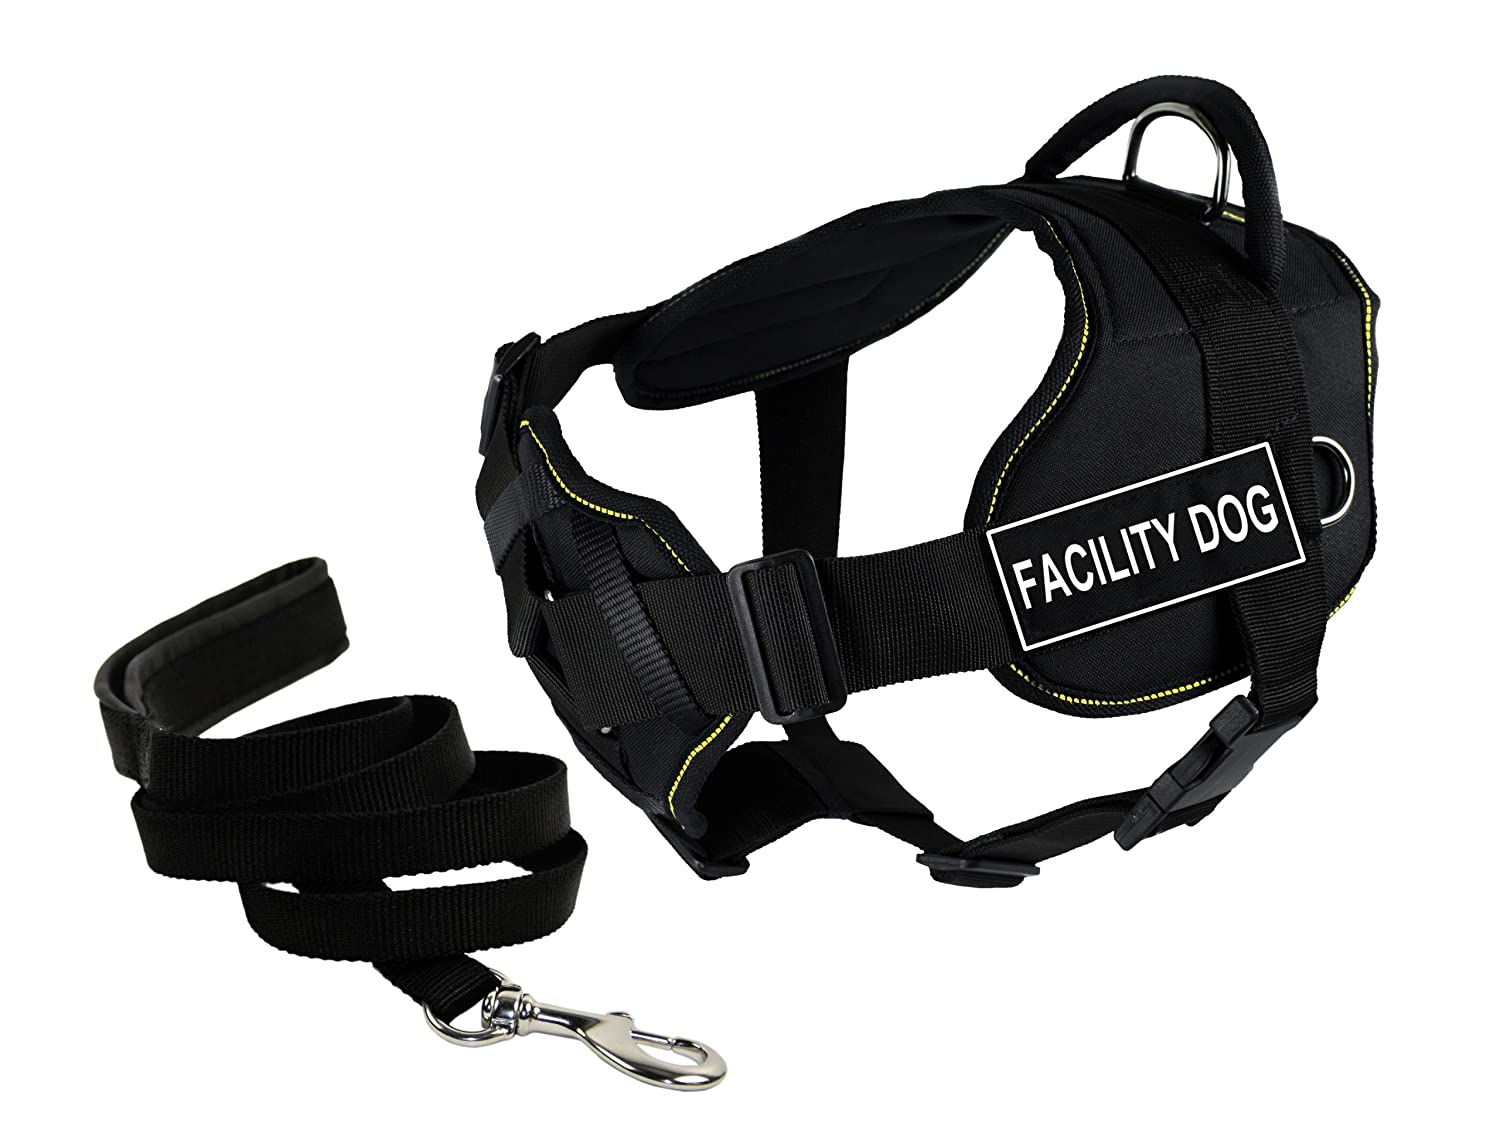 Dean & Tyler's DT Fun Chest Support FACILITY DOG Harness, Large, with 6 ft Padded Puppy Leash.